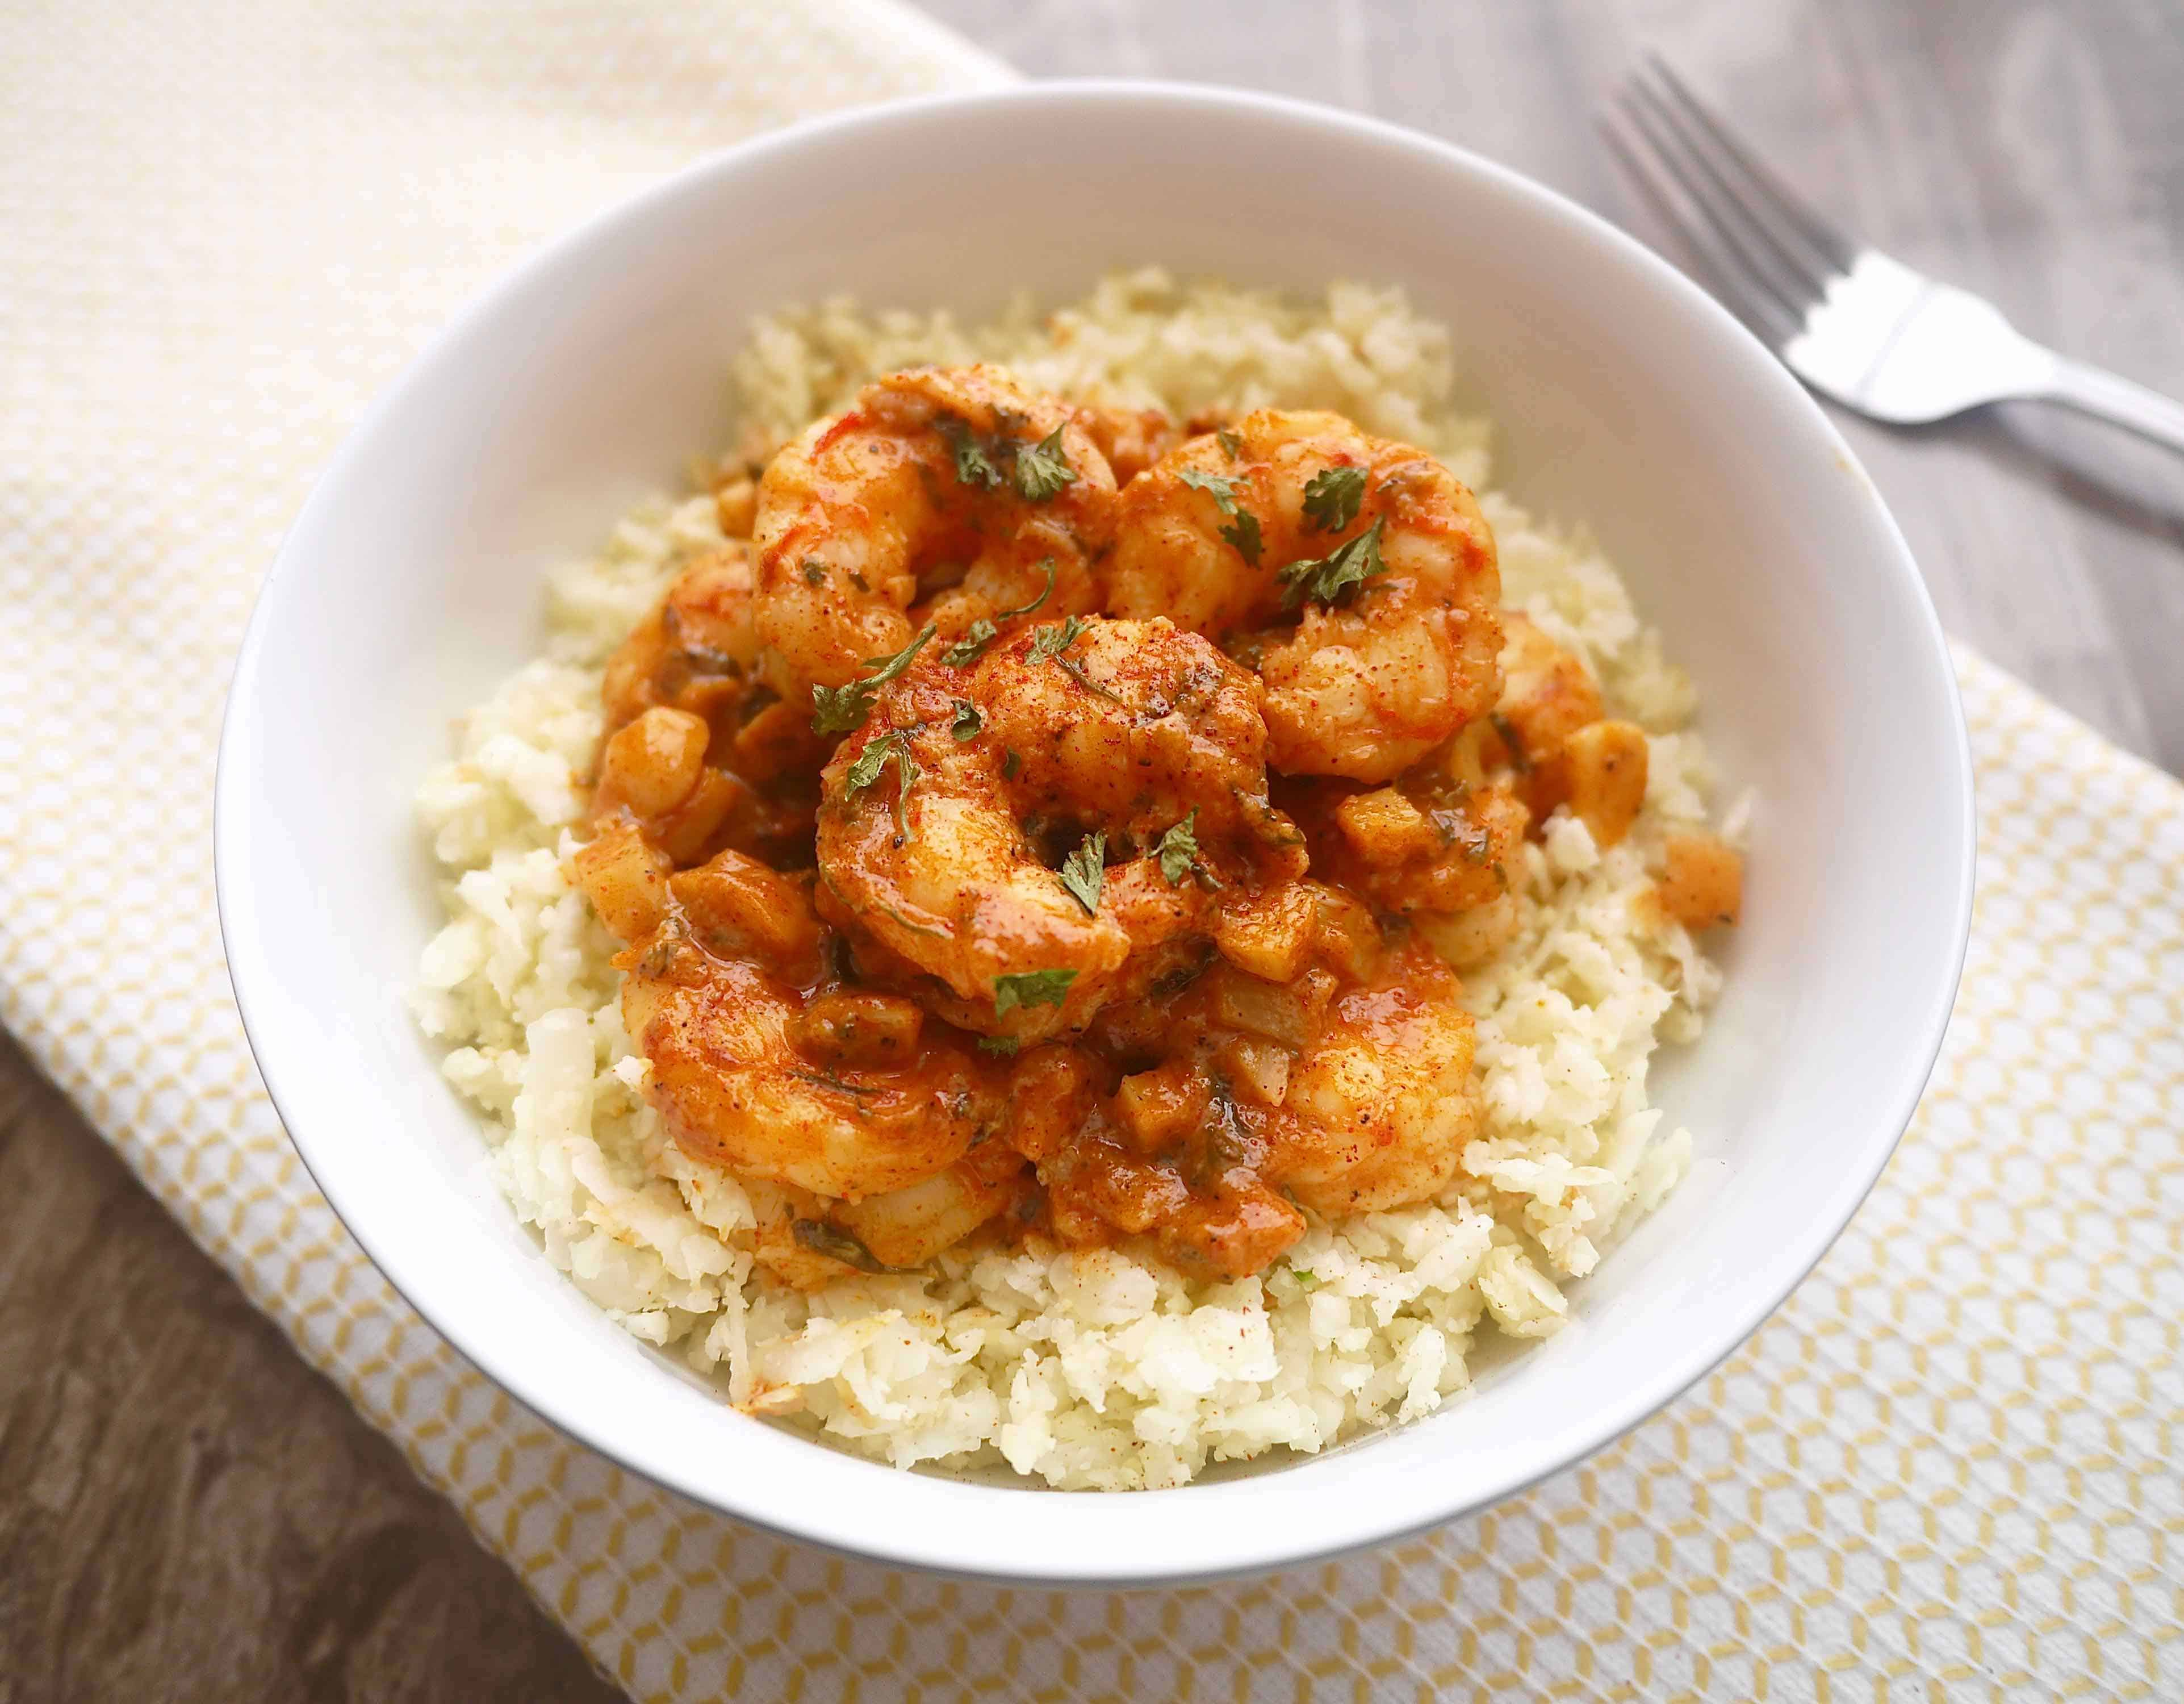 The Tastiest Paleo Paprika Garlic Shrimp Gf Perchance To Cook